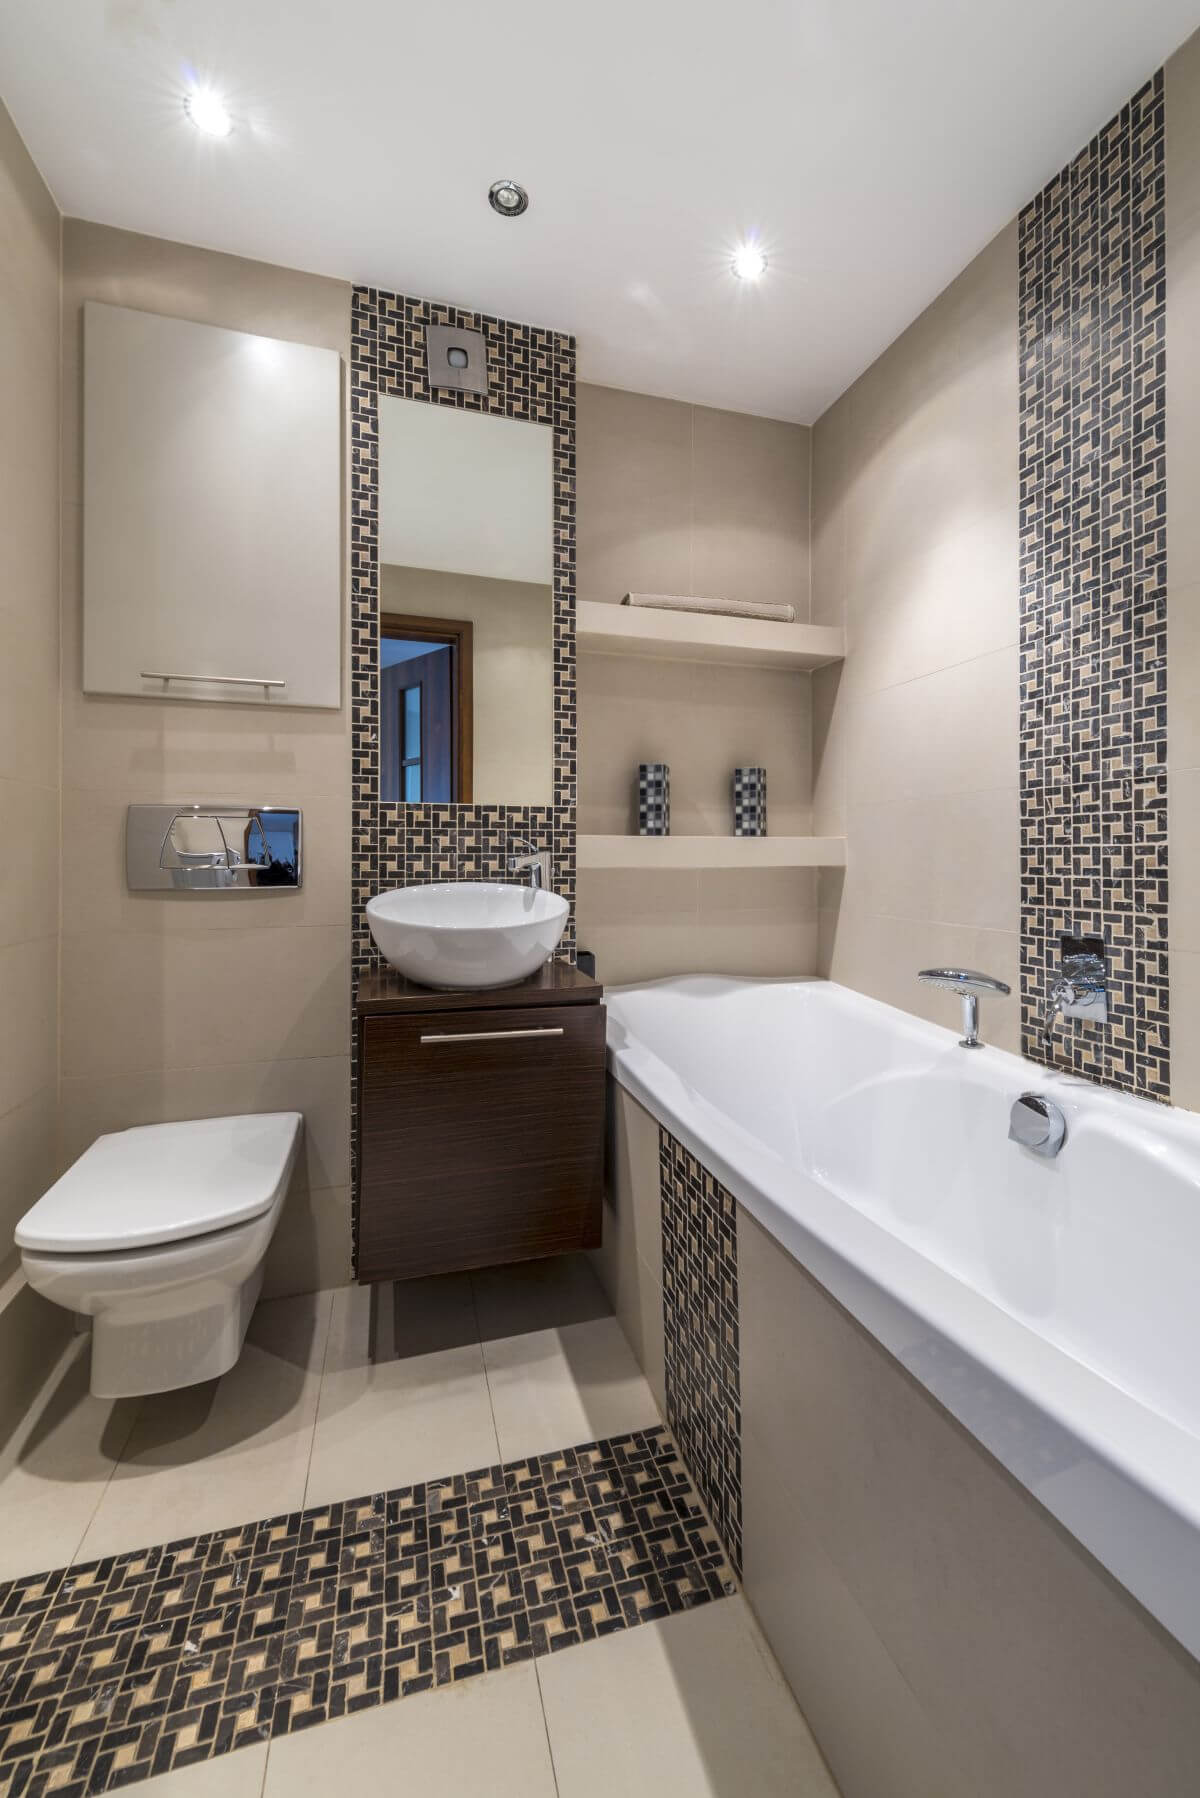 small bathroom design minimalist design with repeated tile patterns BFWSUAO